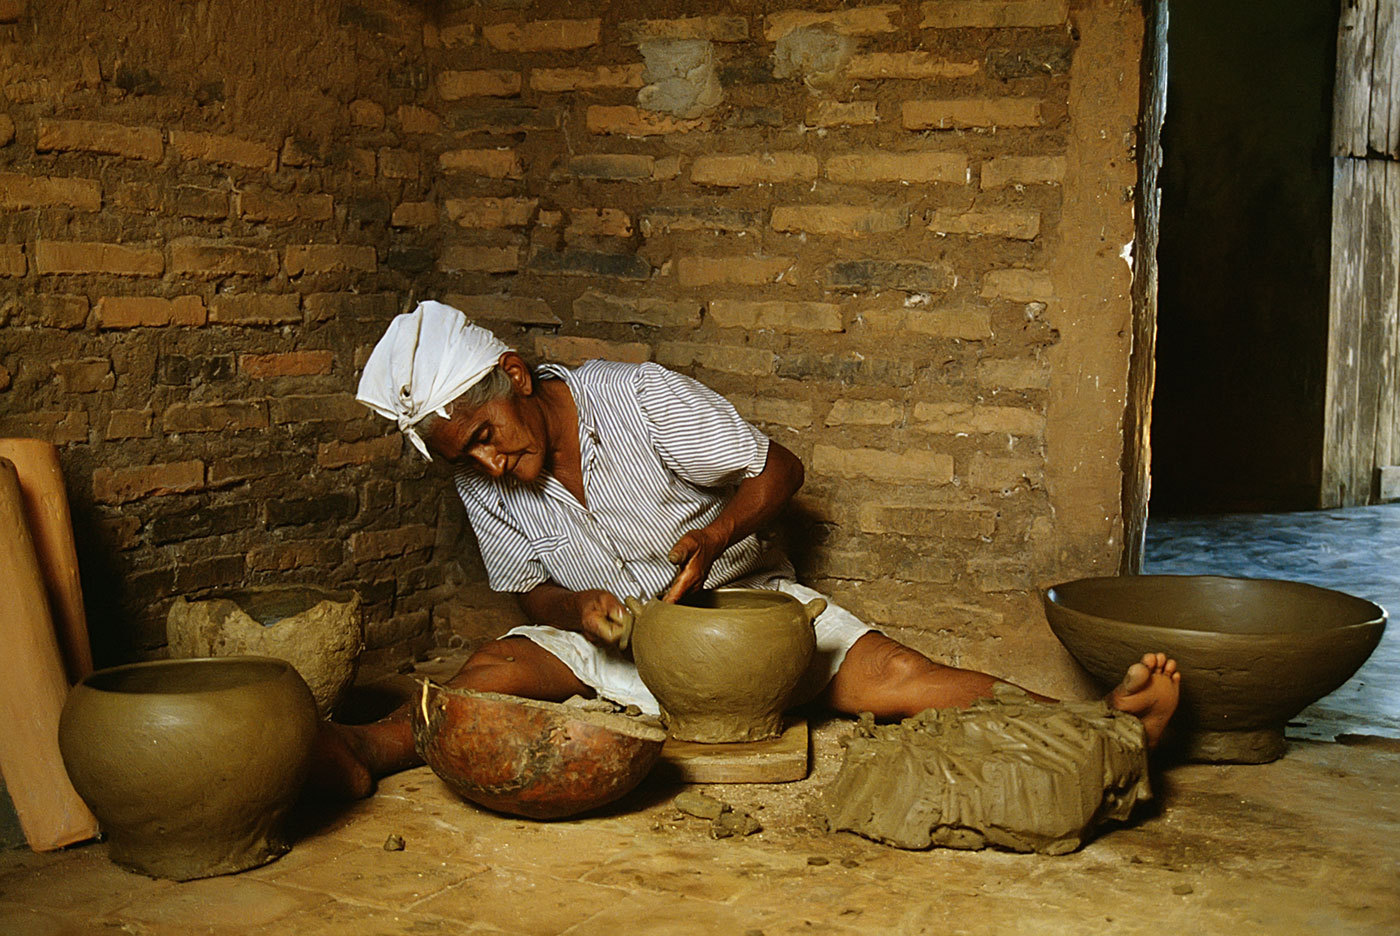 Home business - making pottery for sale, north rural Brazil : BUSINESS & INDUSTRY : Viviane Moos |  Documentary Photographer